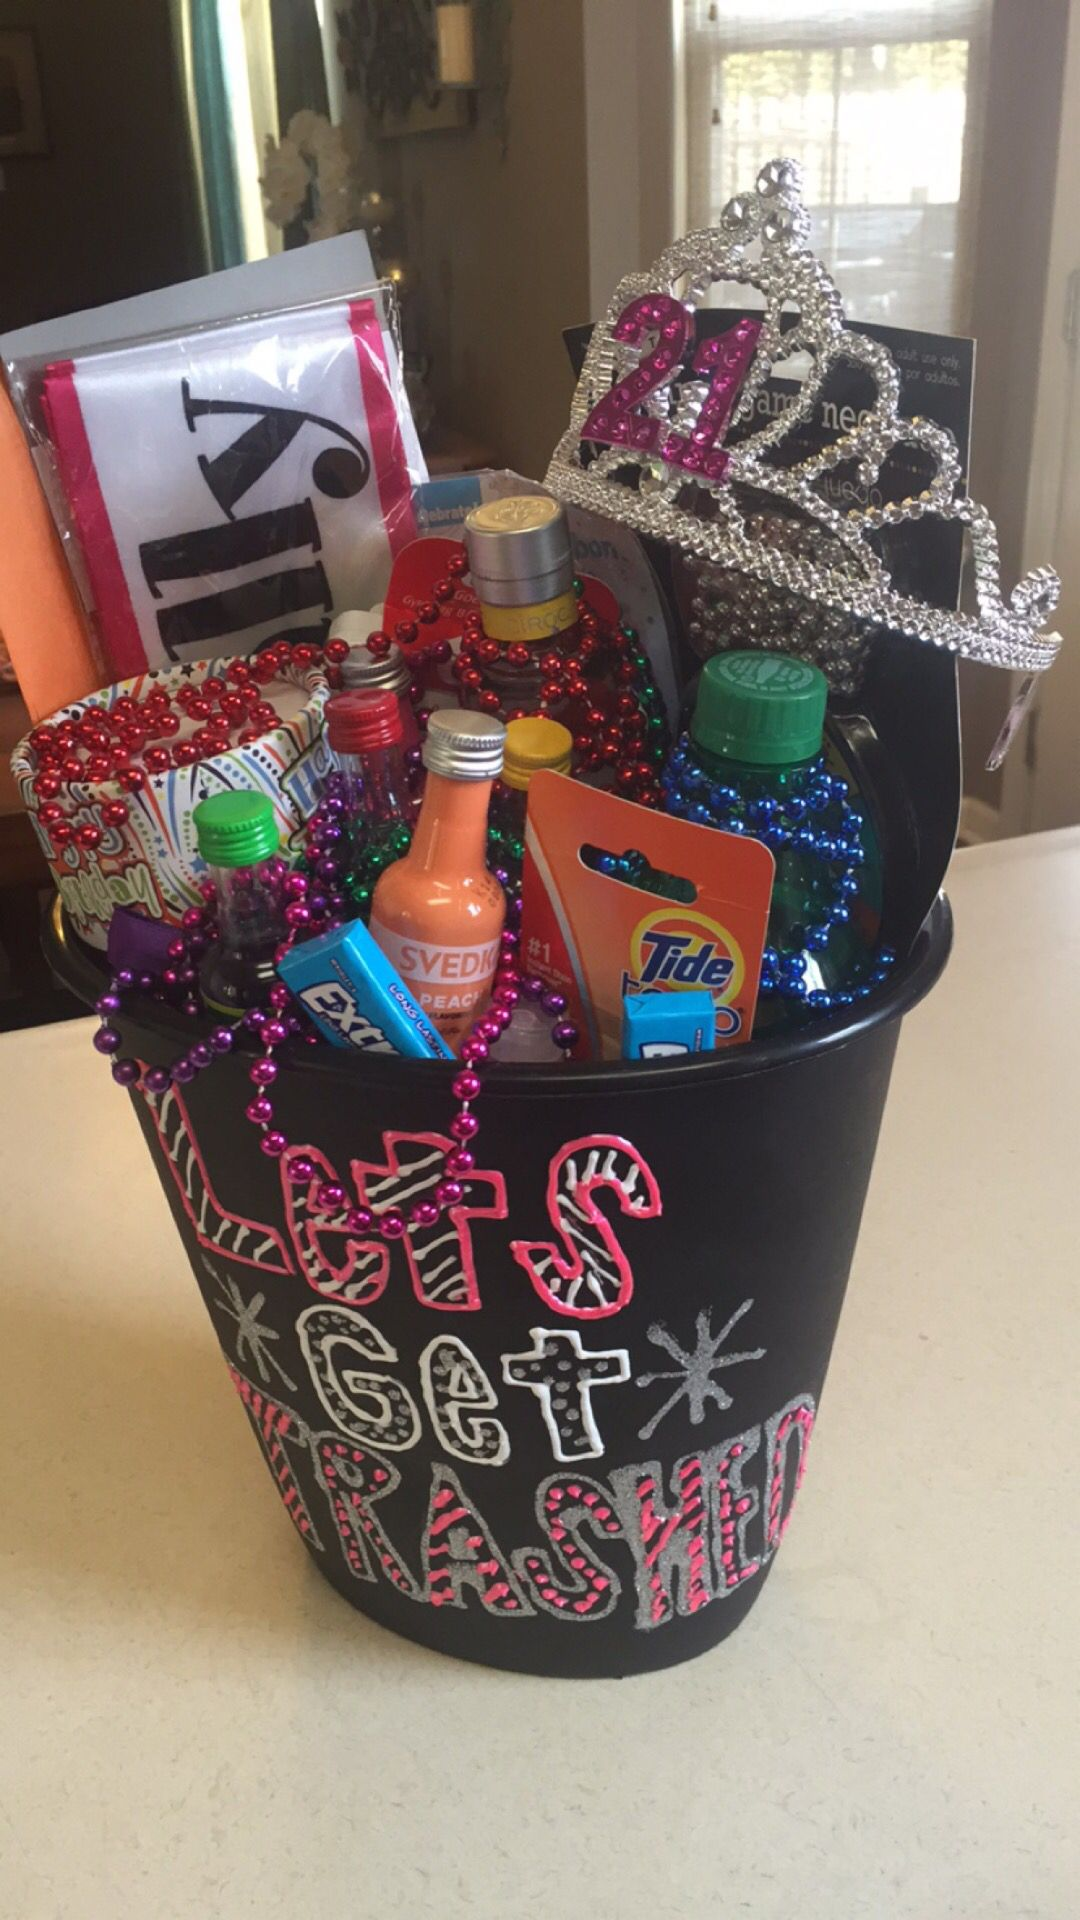 21st Birthday Gift In A Trash Can Saying Lets Get Trashed Filled With All The Necessities Needed For Eventful Evening And Morning After